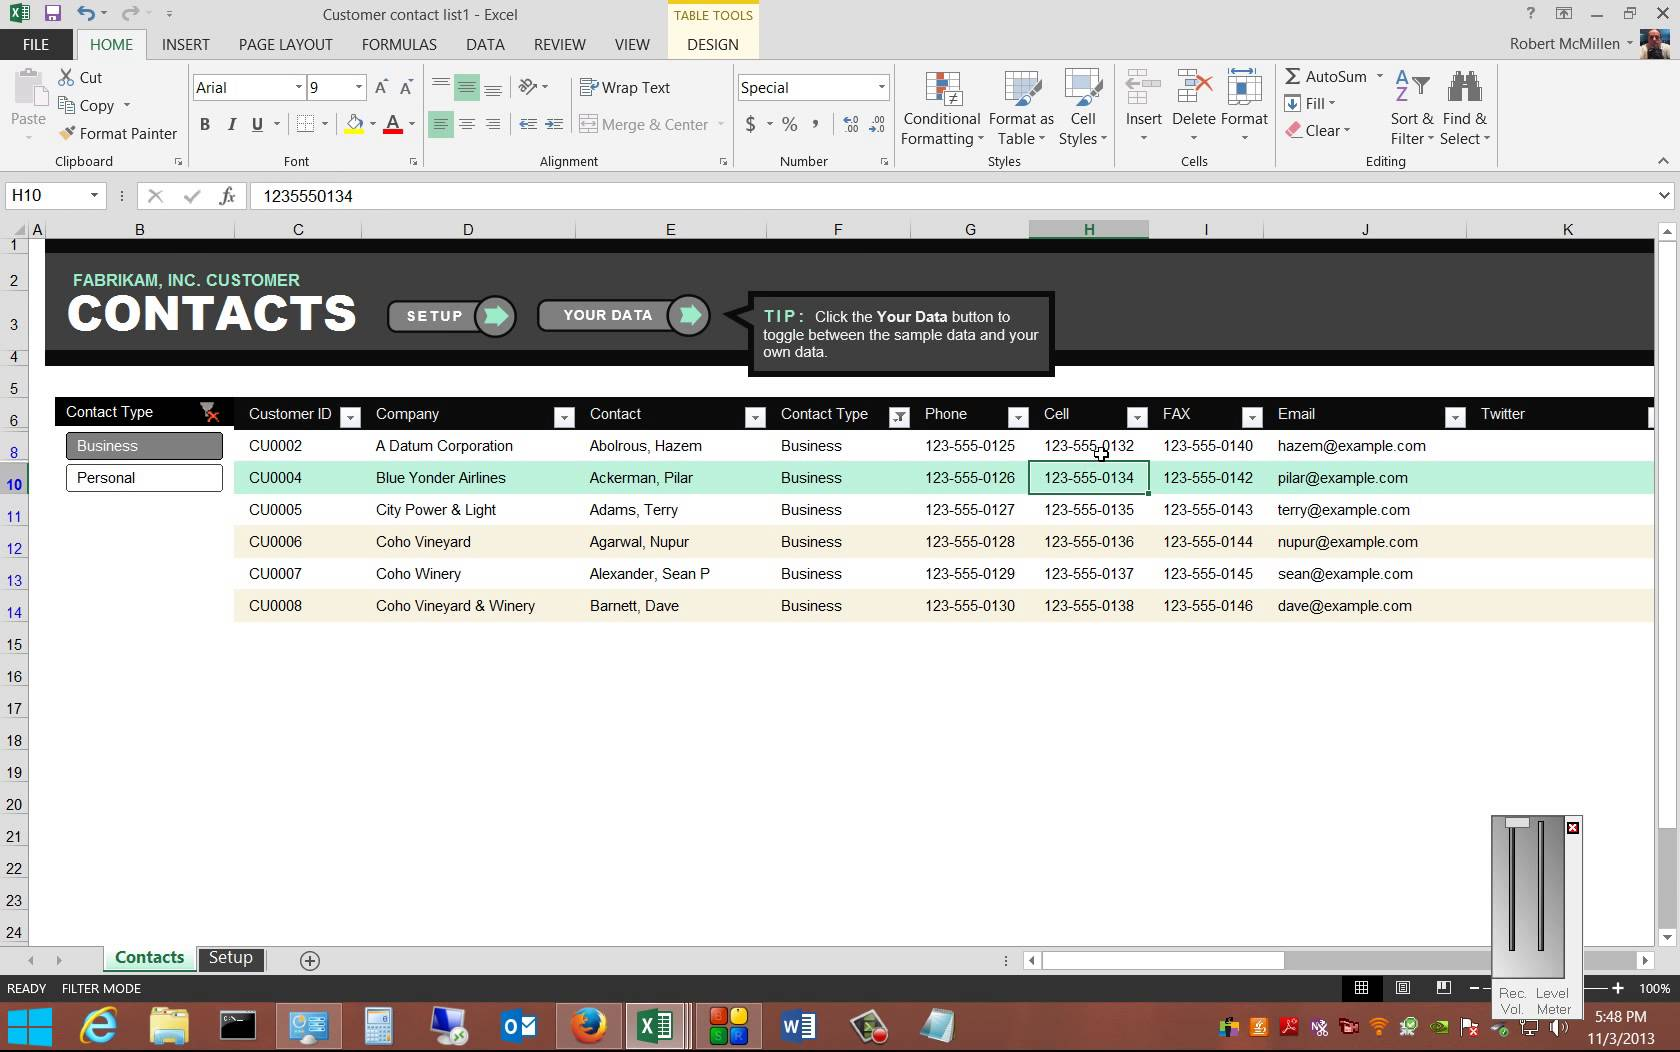 Review of the free Customer Contact Template in Microsoft Excel